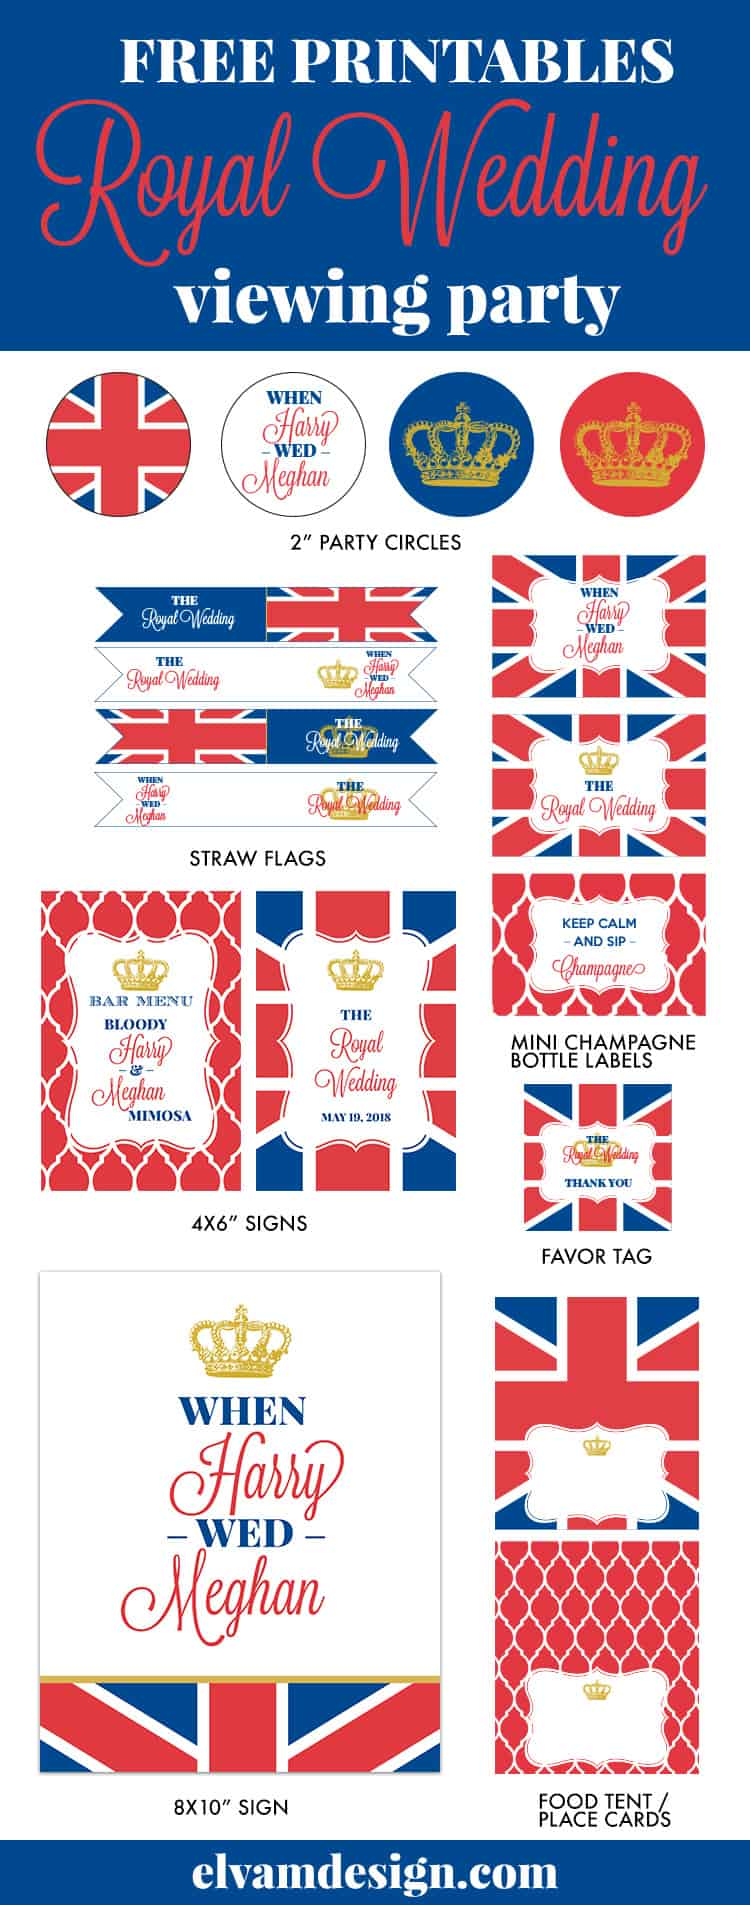 Free Royal Wedding Viewing Party Printables from Elva M Design. Grab your free printables at elvamdesign.com and check out some decoration ideas.